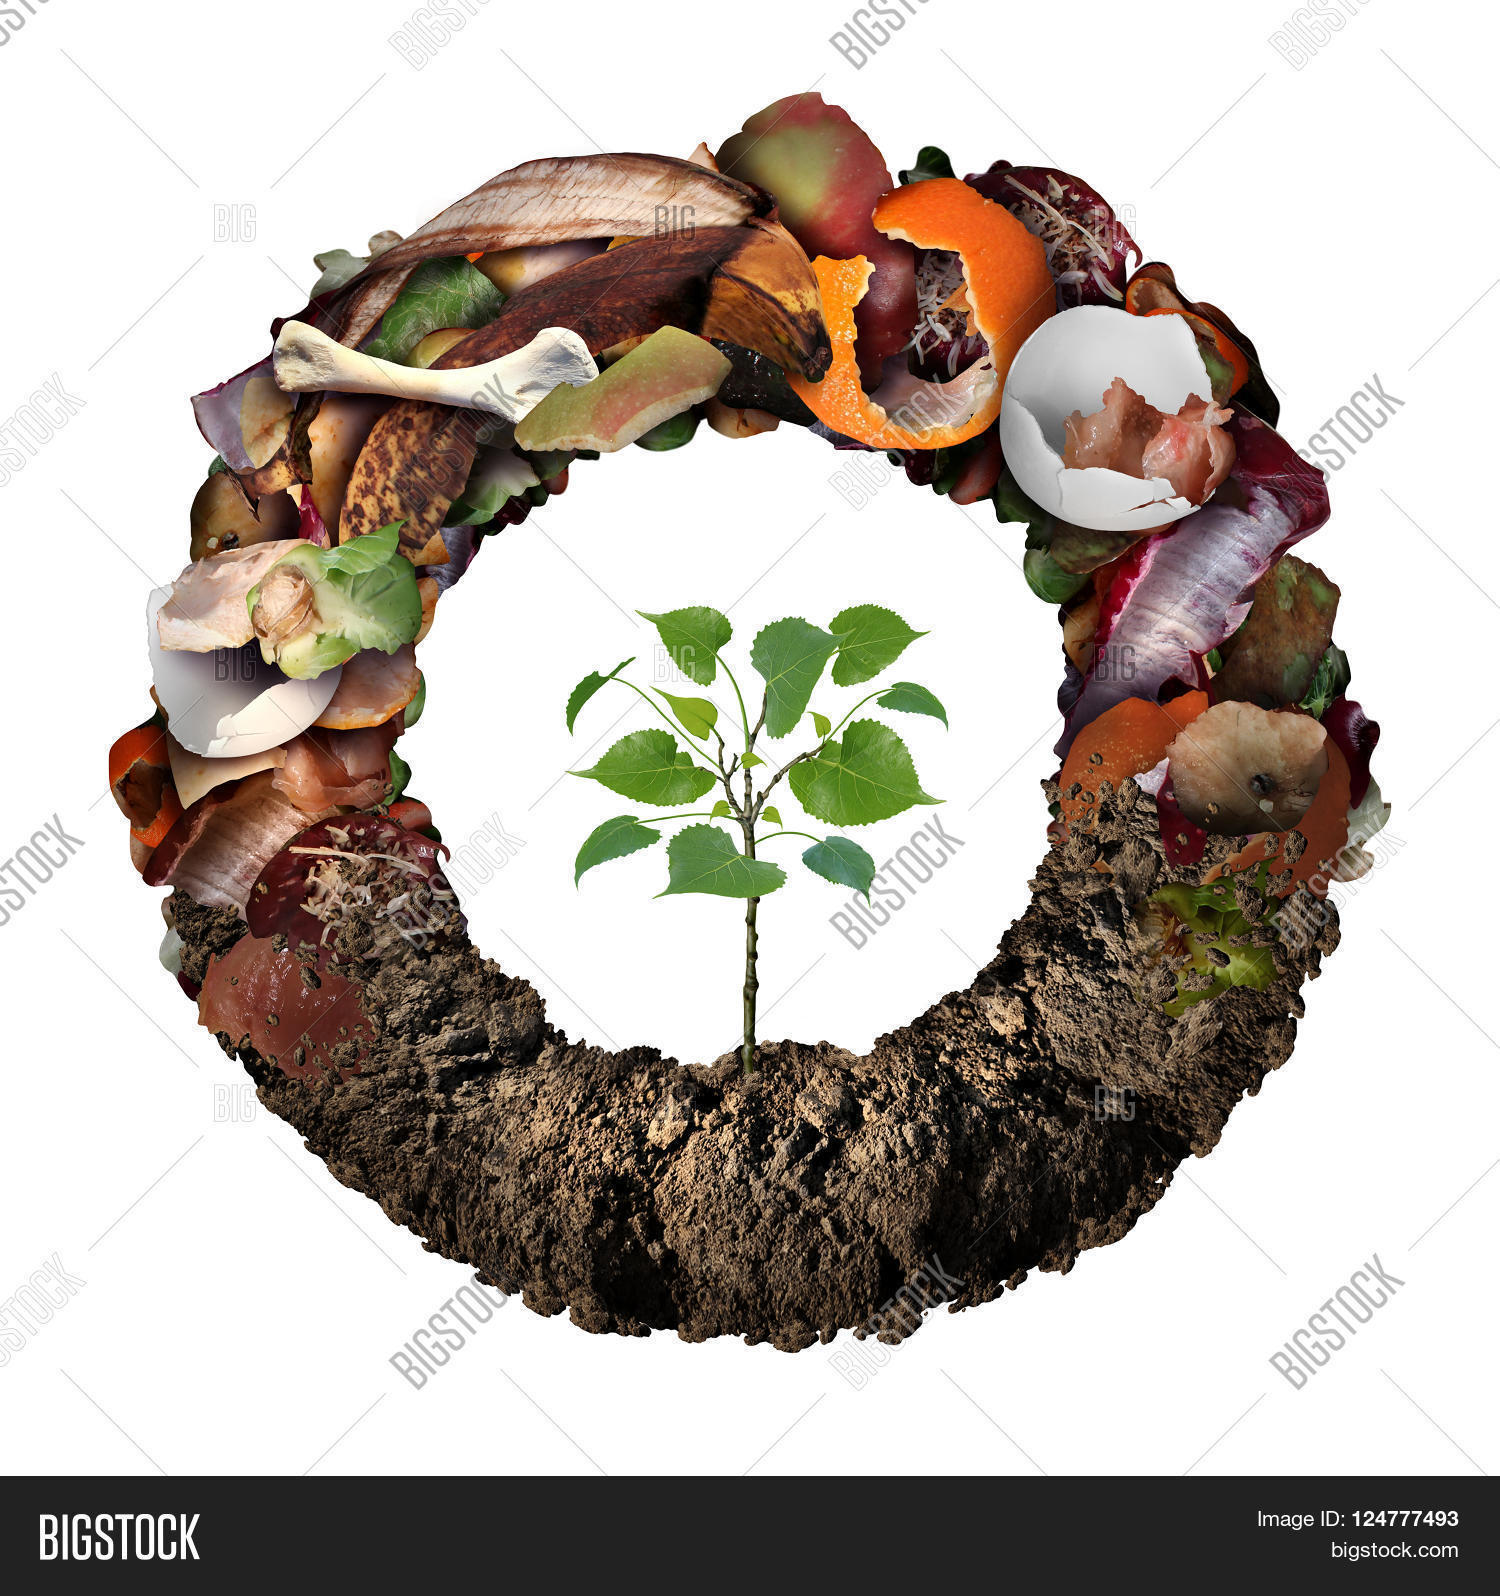 Compost life cycle symbol image photo bigstock for Soil life cycle